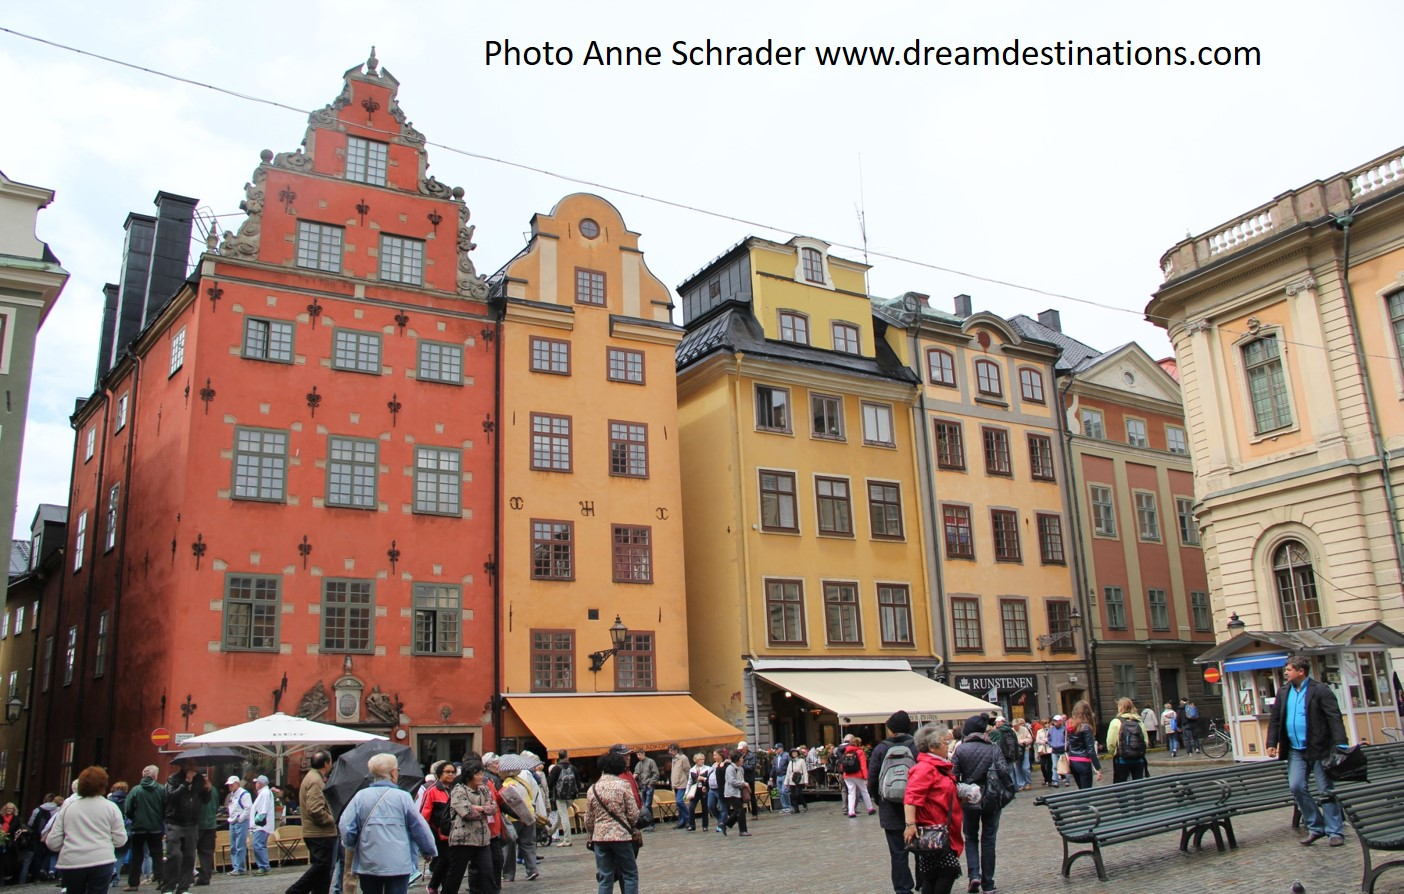 Stortorget Square in Old Town Stockholm